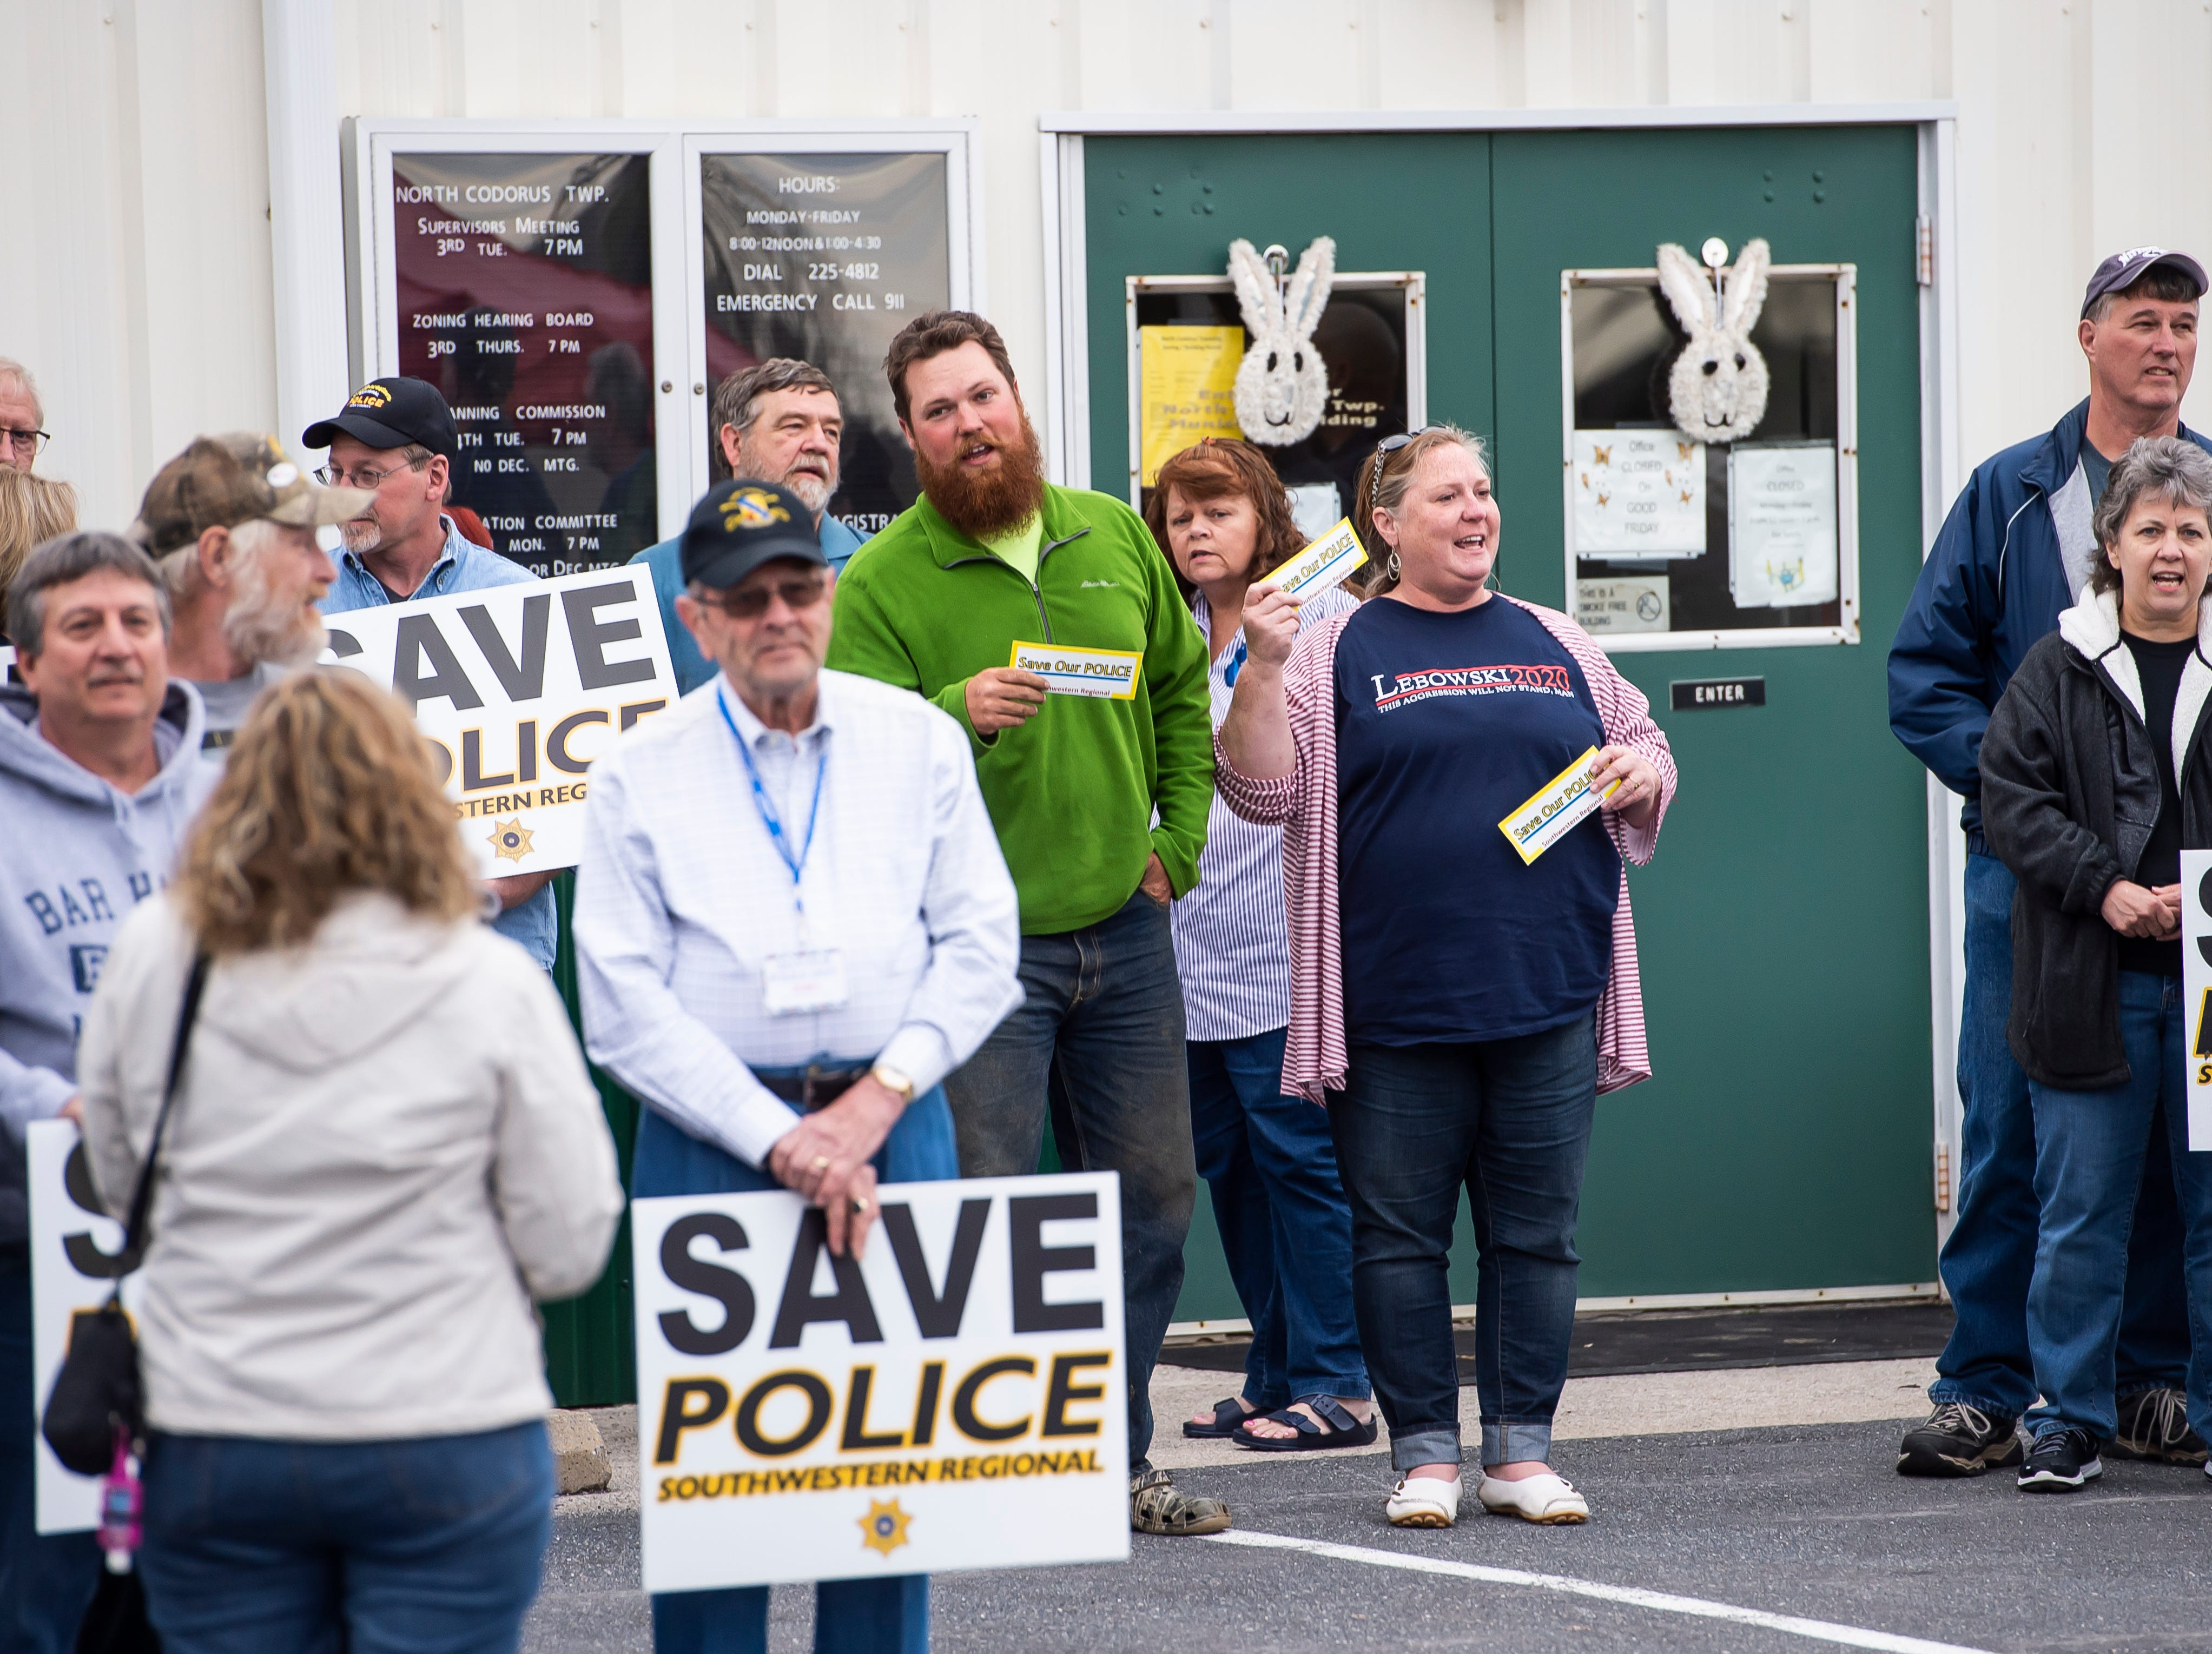 """North Codorus Township residents chant """"Save our police"""" before the start of a township meeting on Tuesday, April 16, 2019."""